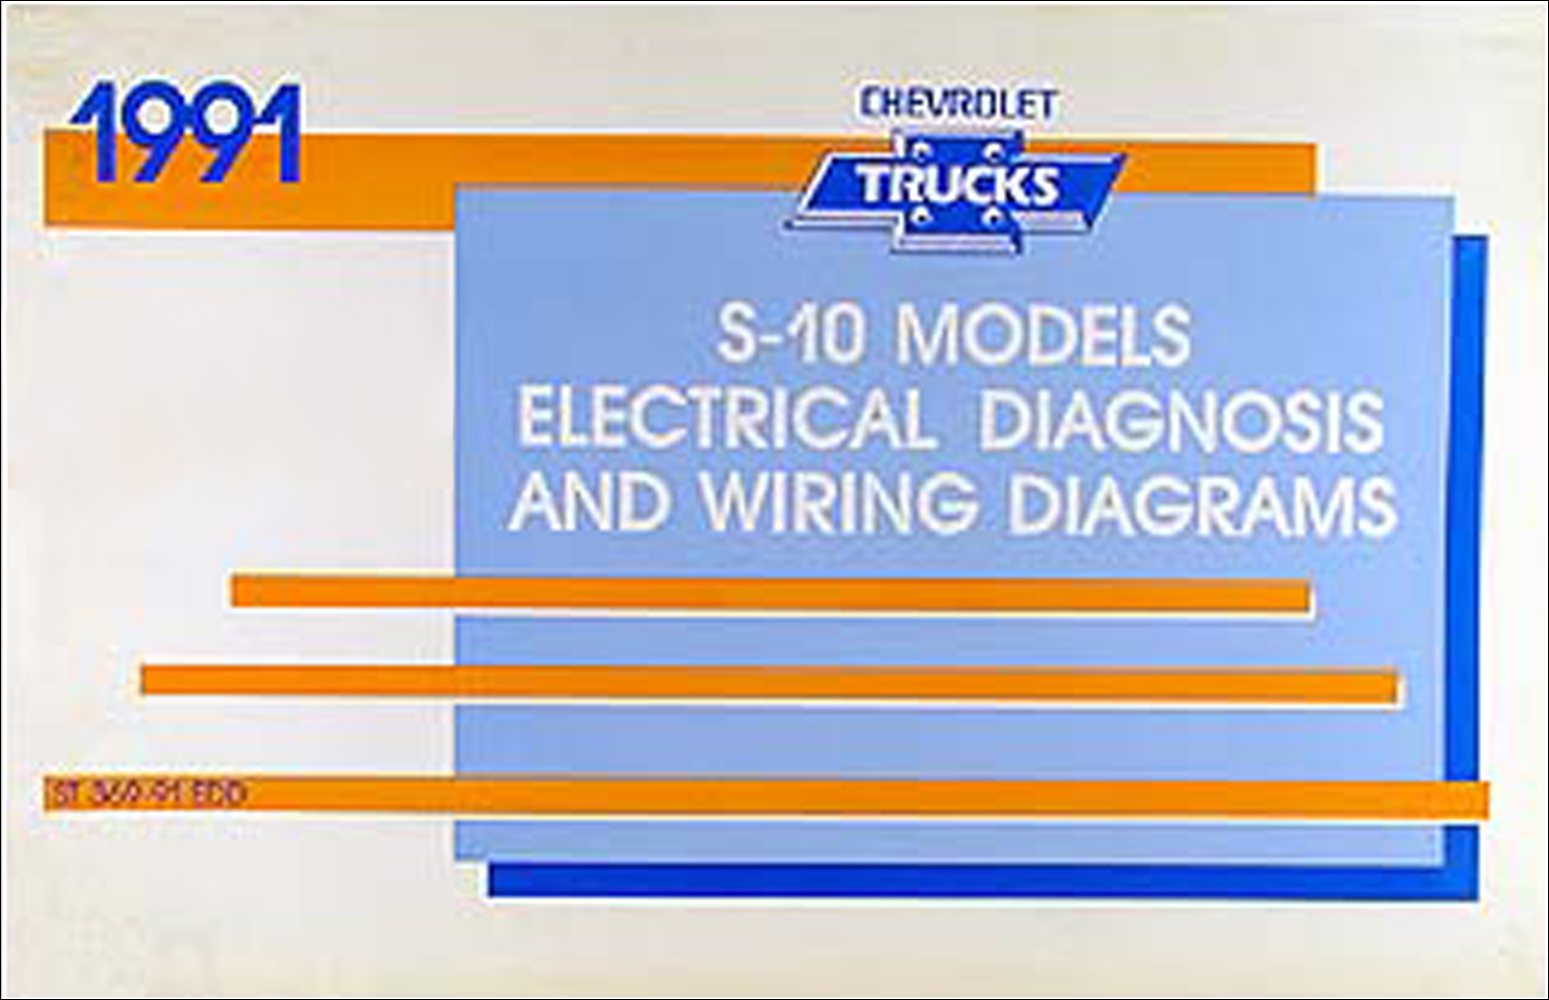 1991 Jeep Comanche Wiring Diagram Opinions About For 88 Chevrolet S10 Trusted Diagrams Rh Chicagoitalianrestaurants Com 1988